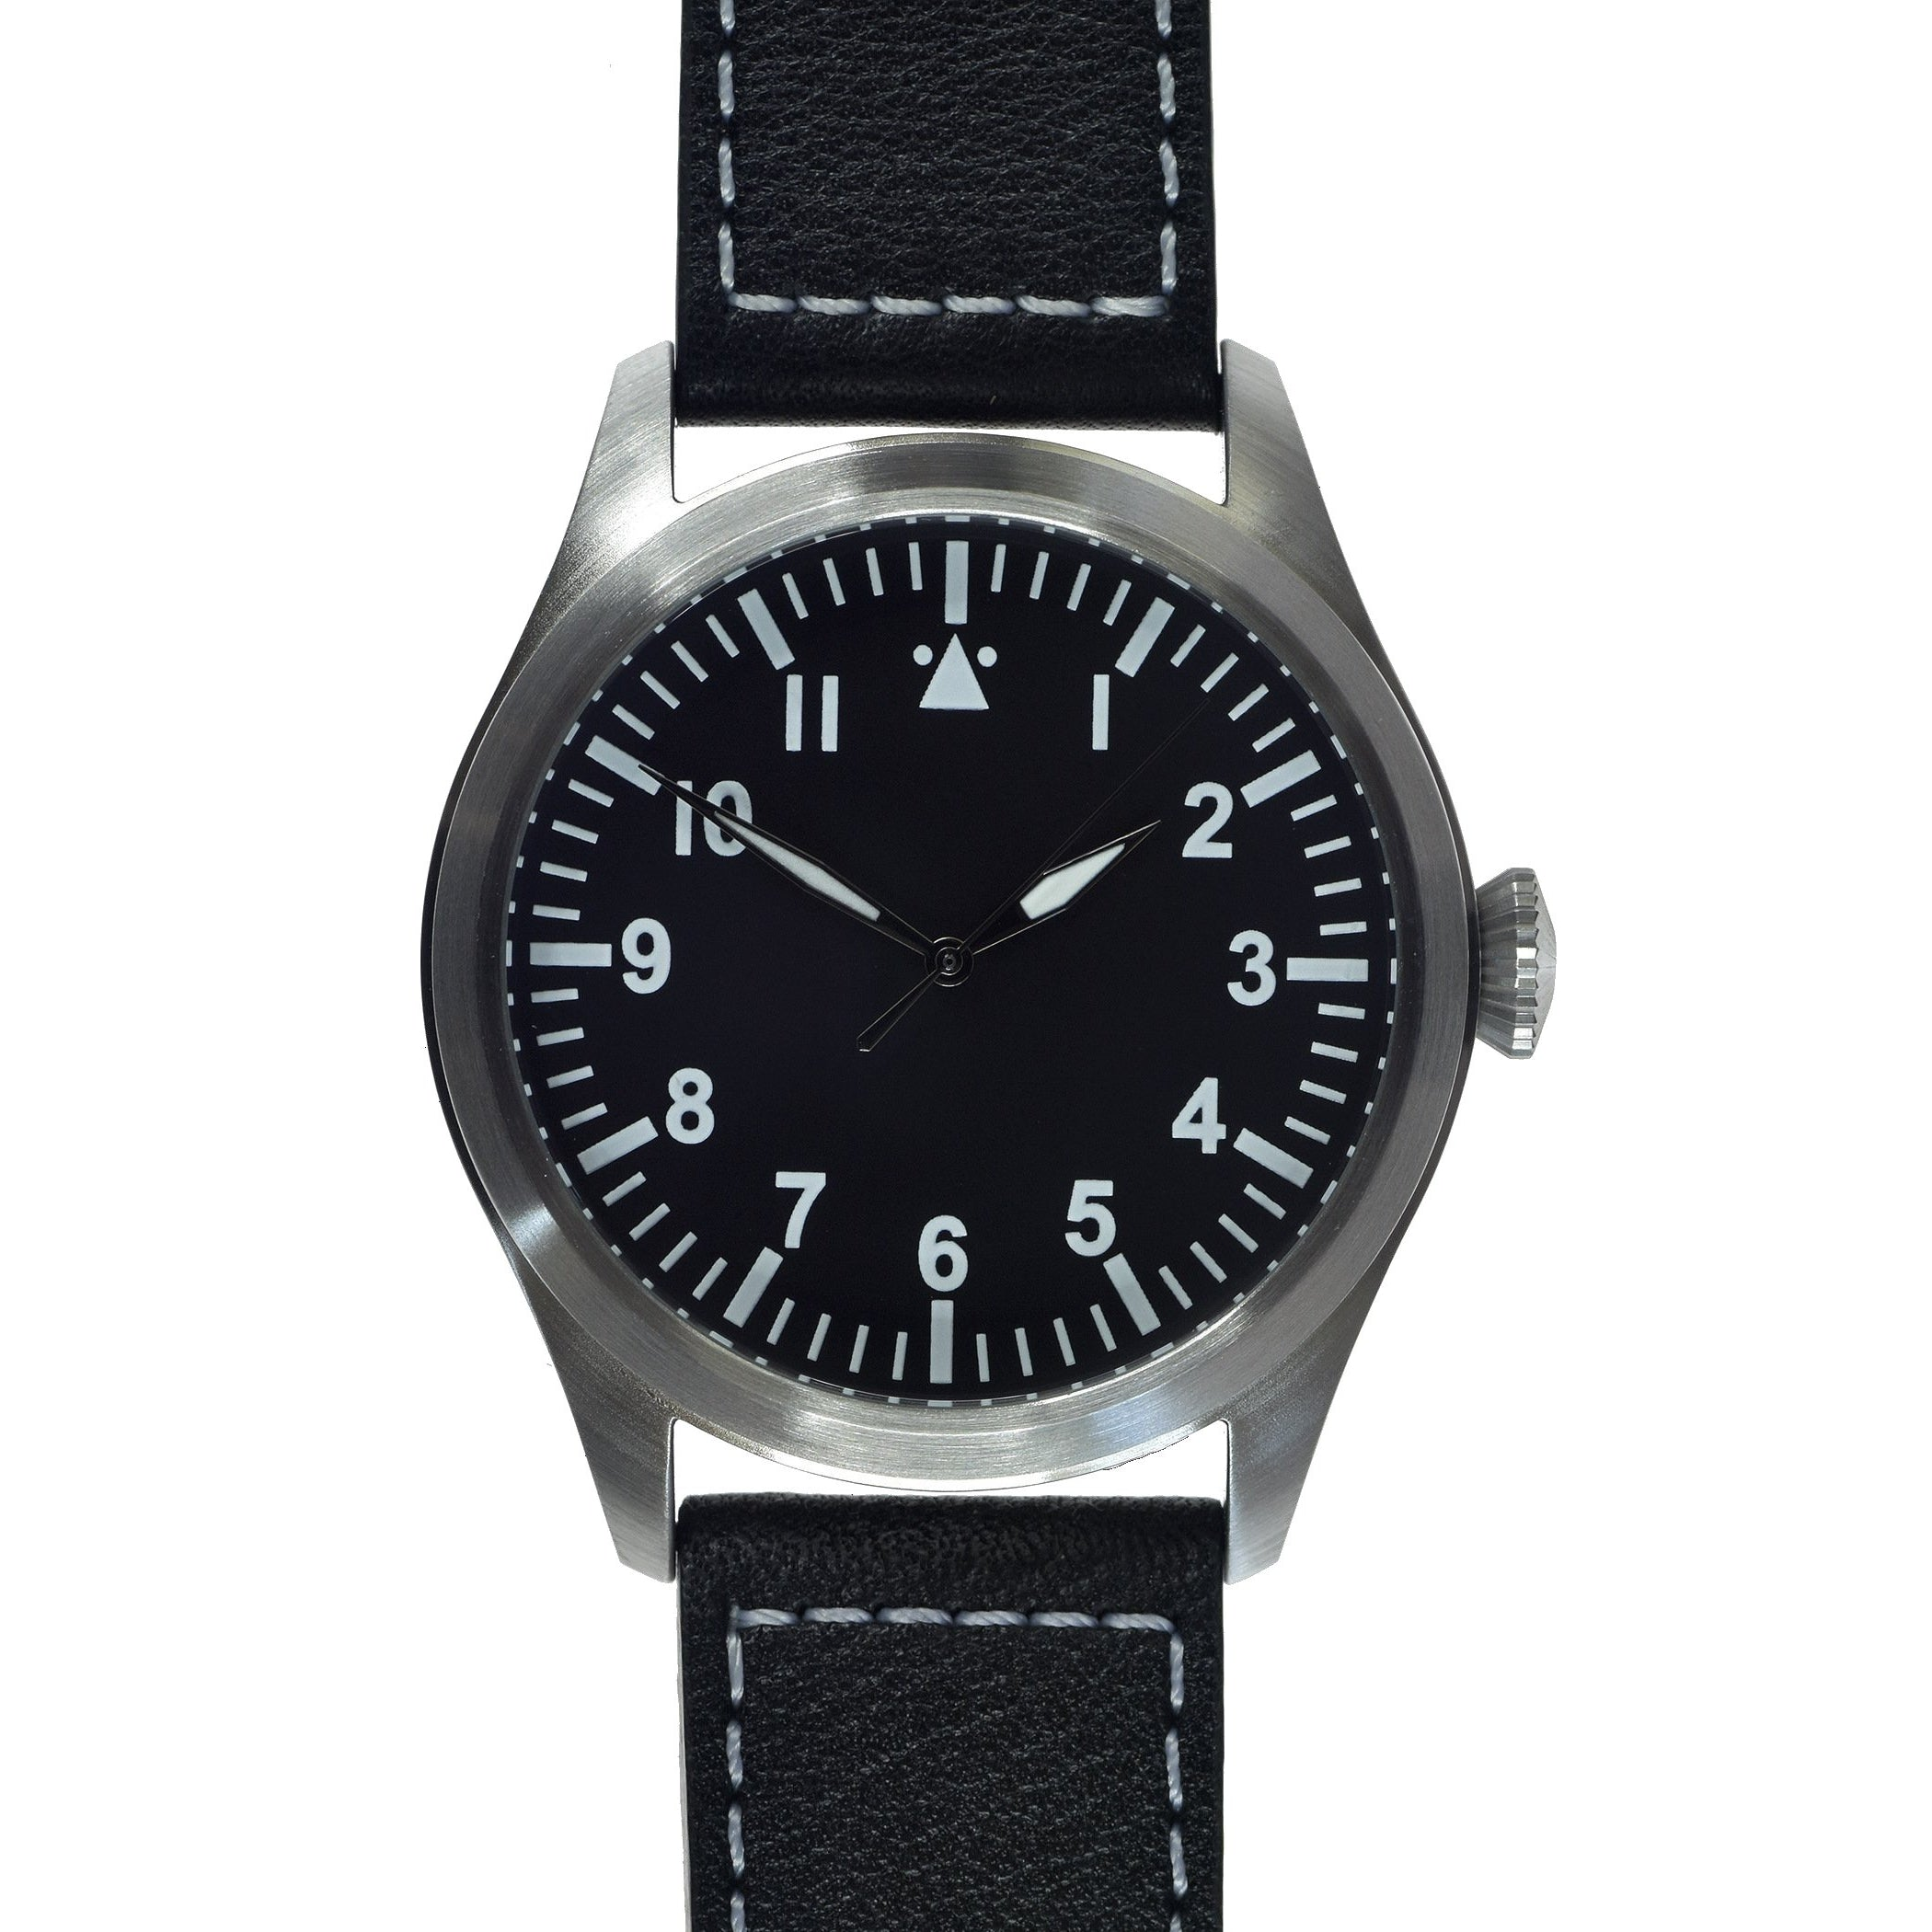 MWC Classic 46mm Limited Edition XL Military Pilots Watch with Sweep Second Hand Unbranded